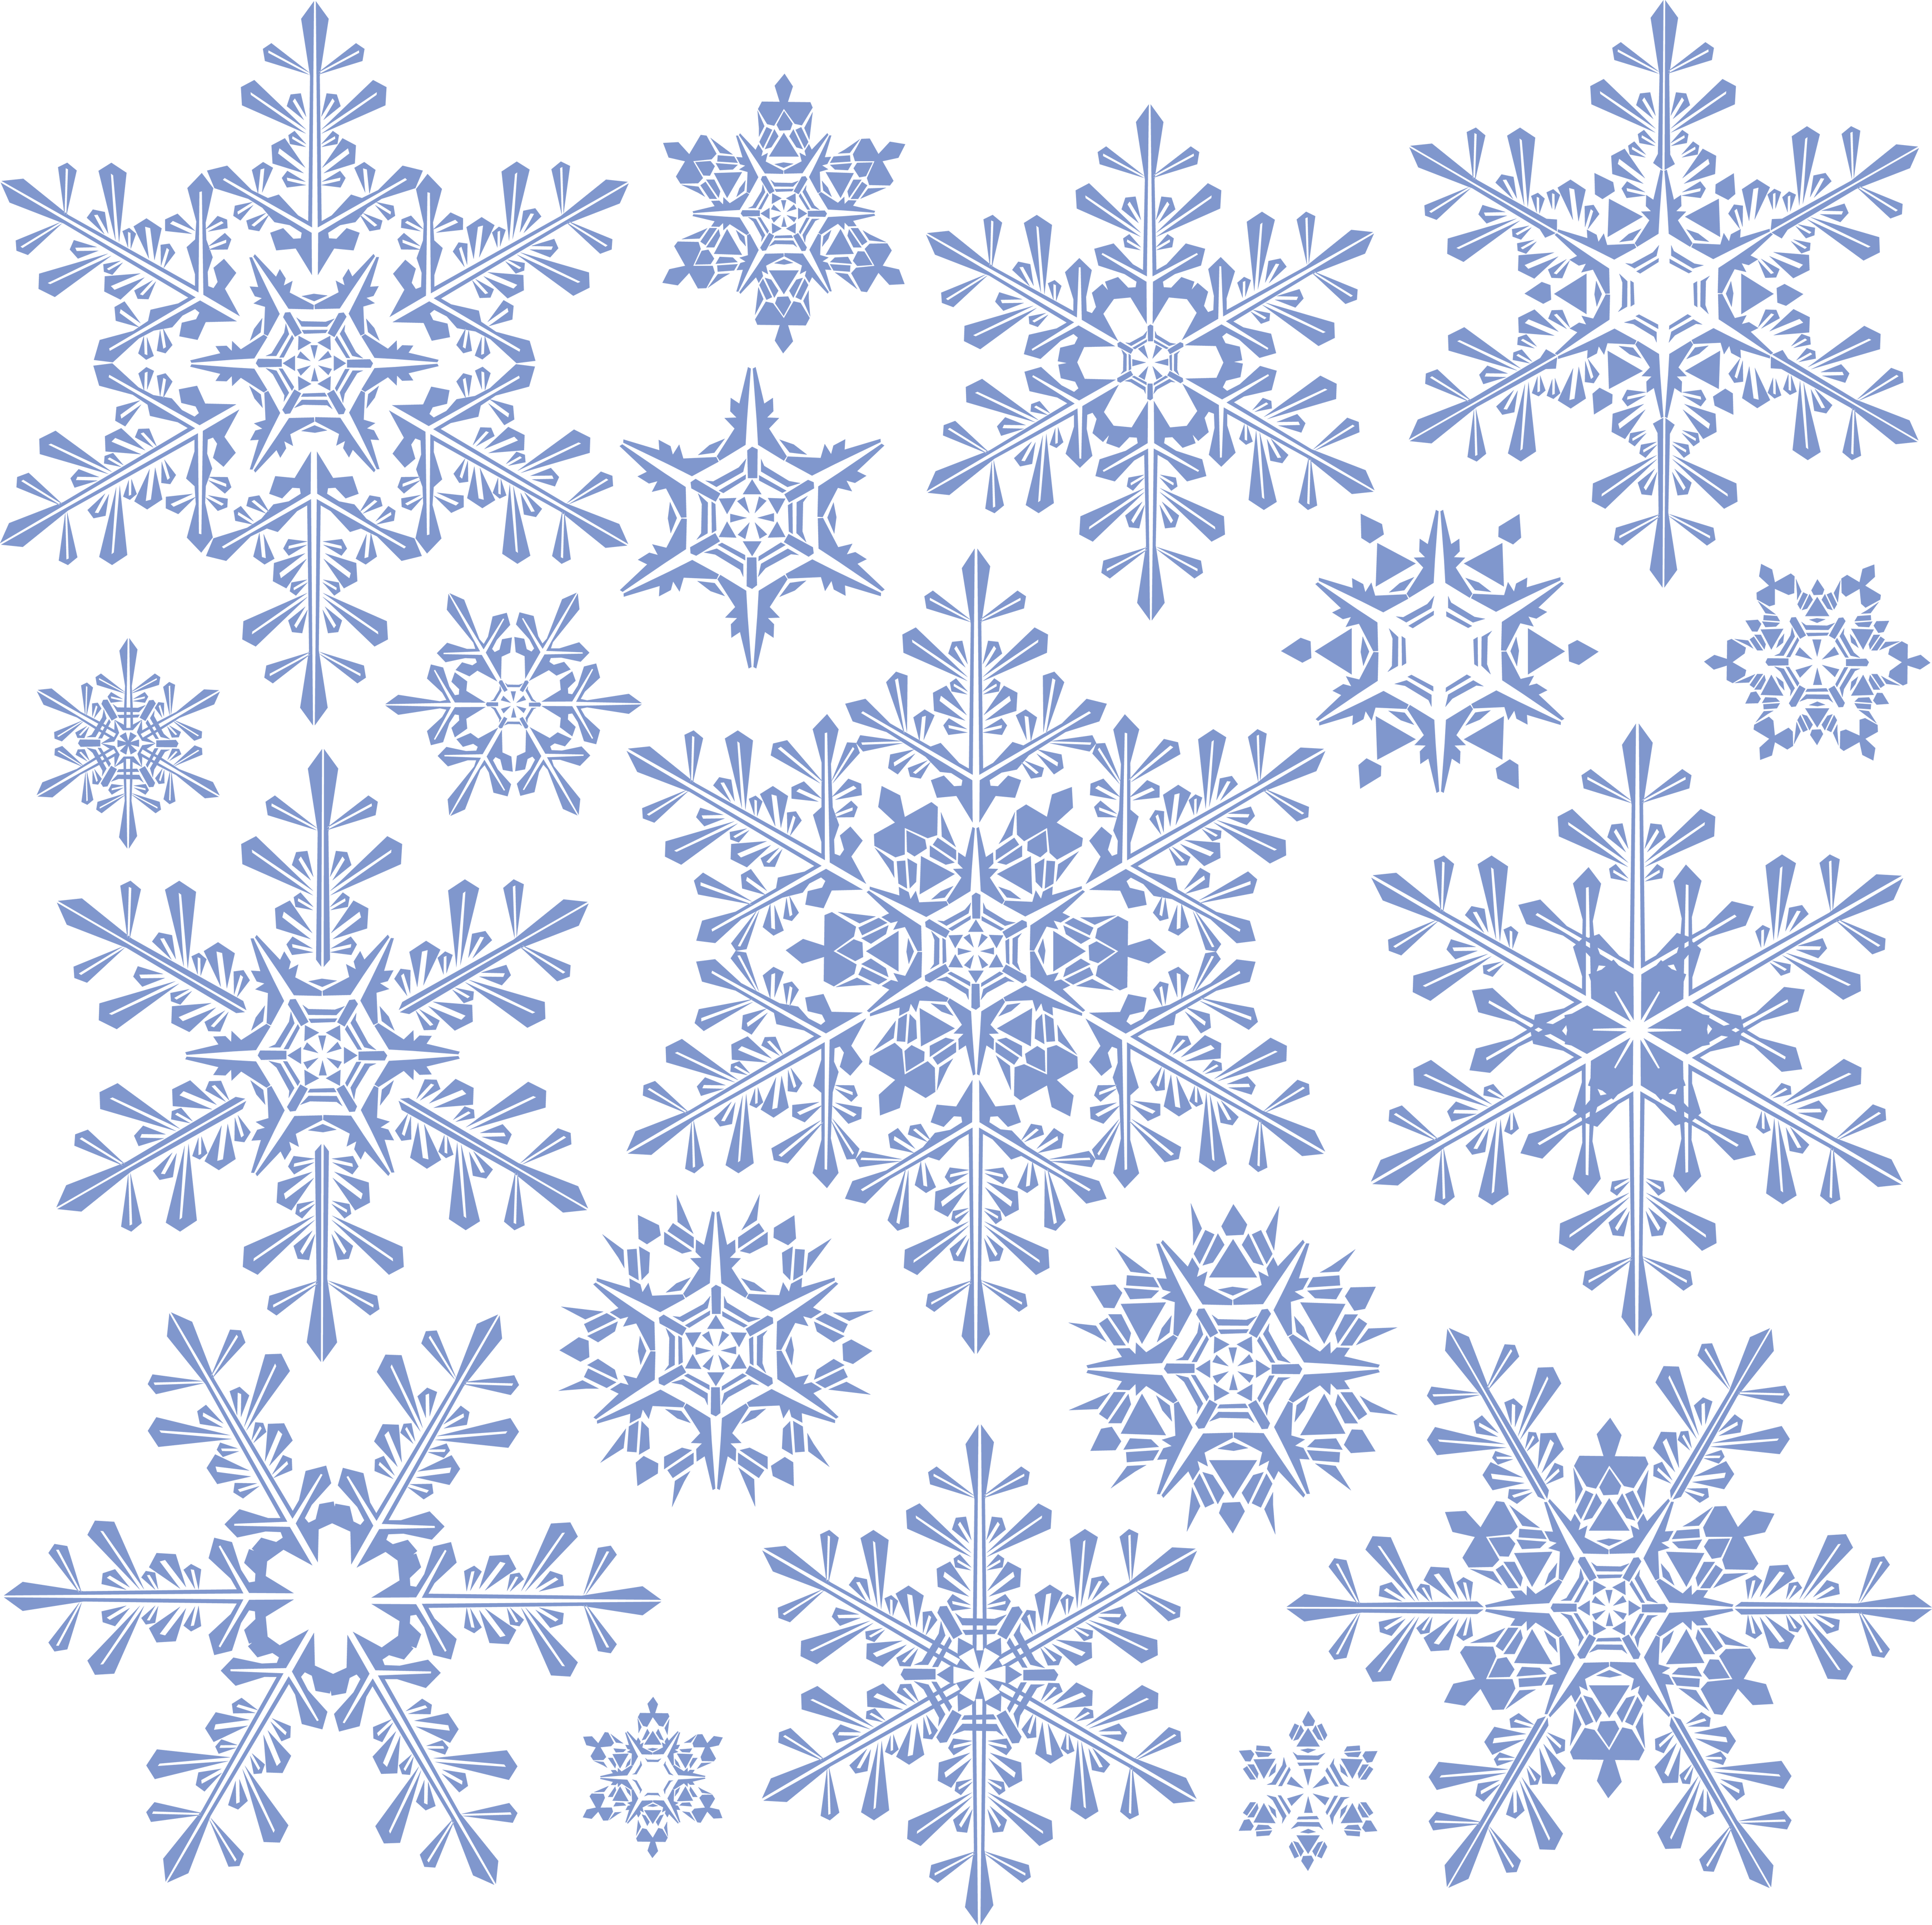 Snowflakes PNG image image with transparent background